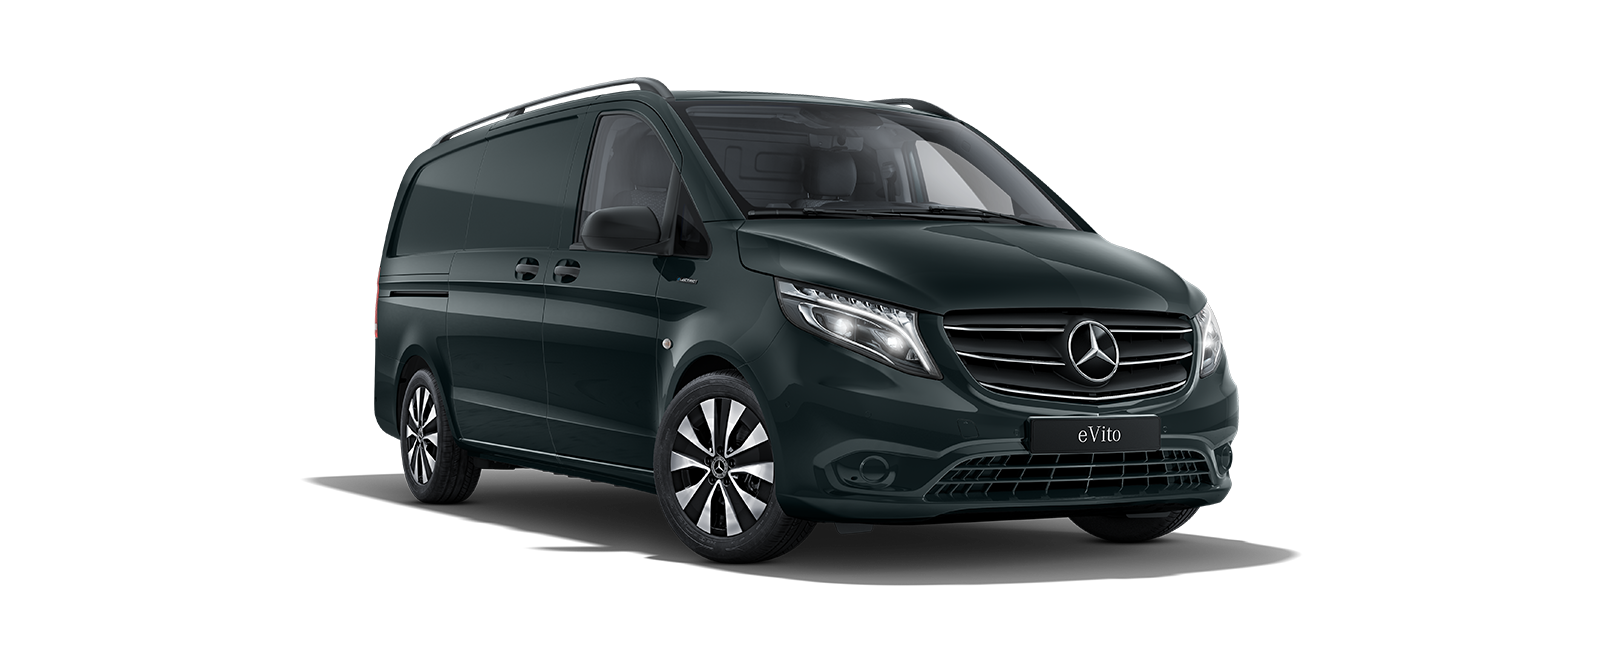 eVito Panel Van, granite green